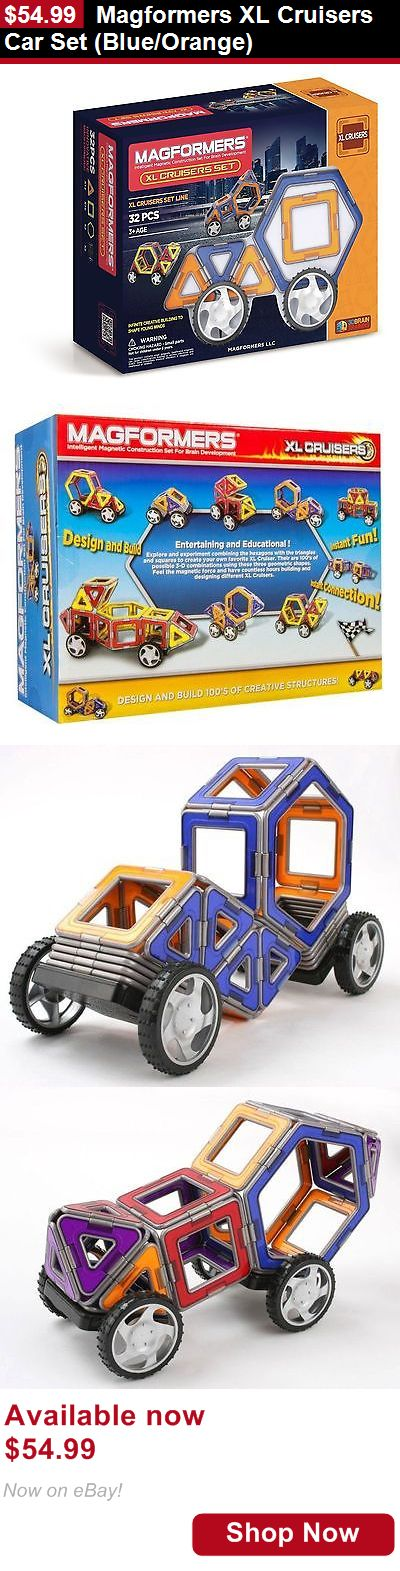 Other Nursery Bedding: Magformers Xl Cruisers Car Set (Blue/Orange) BUY IT NOW ONLY: $54.99